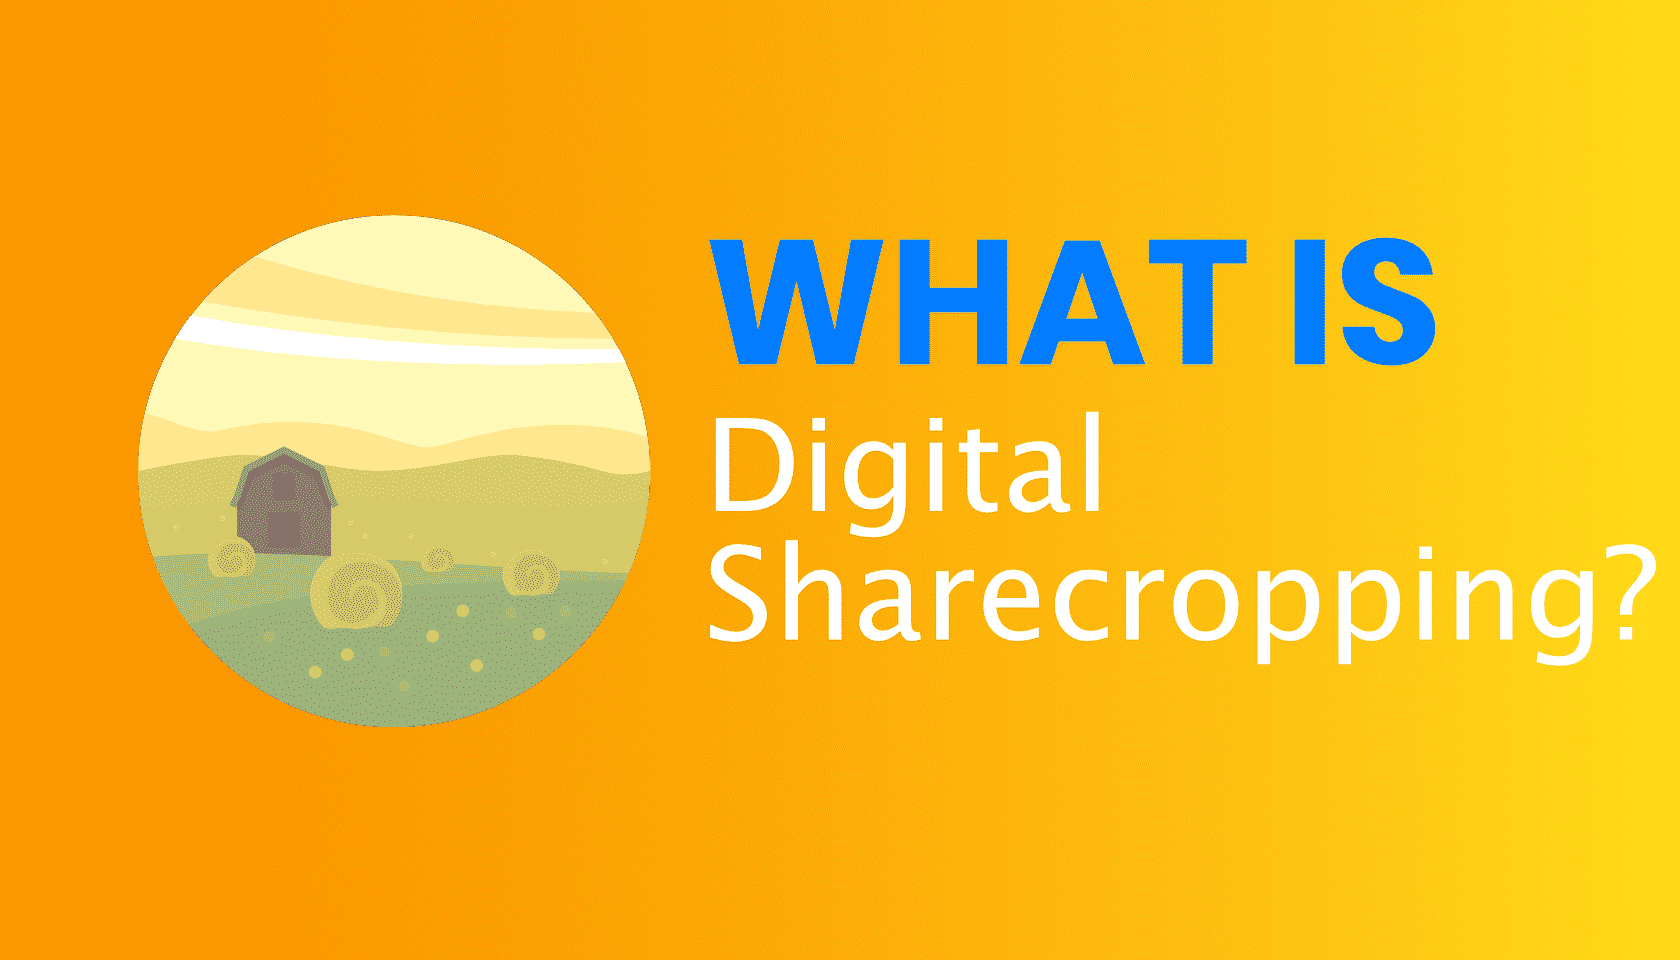 What is: Digital Sharecropping